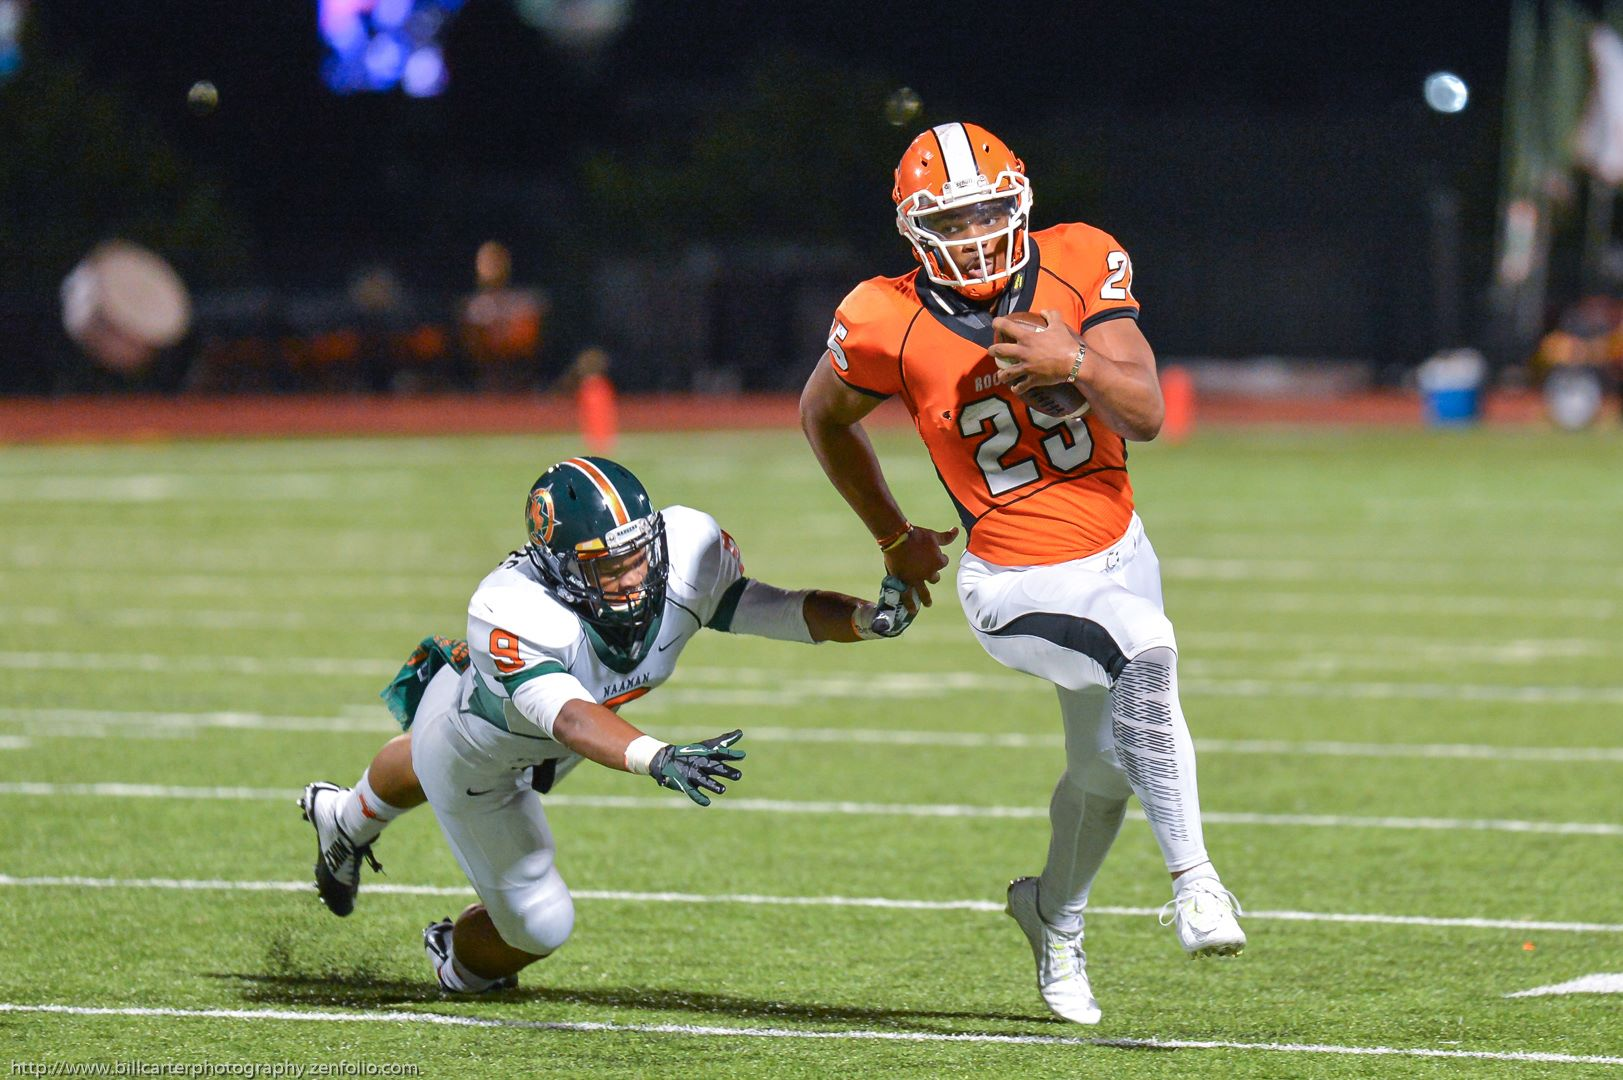 Rockwall High (Texas) four-star running back Chris Warren, son of former NFL star Chris Warren, will announce his college decision among Texas, Texas Tech, Washington and Oklahoma State. Photo courtesy of Fran Webb